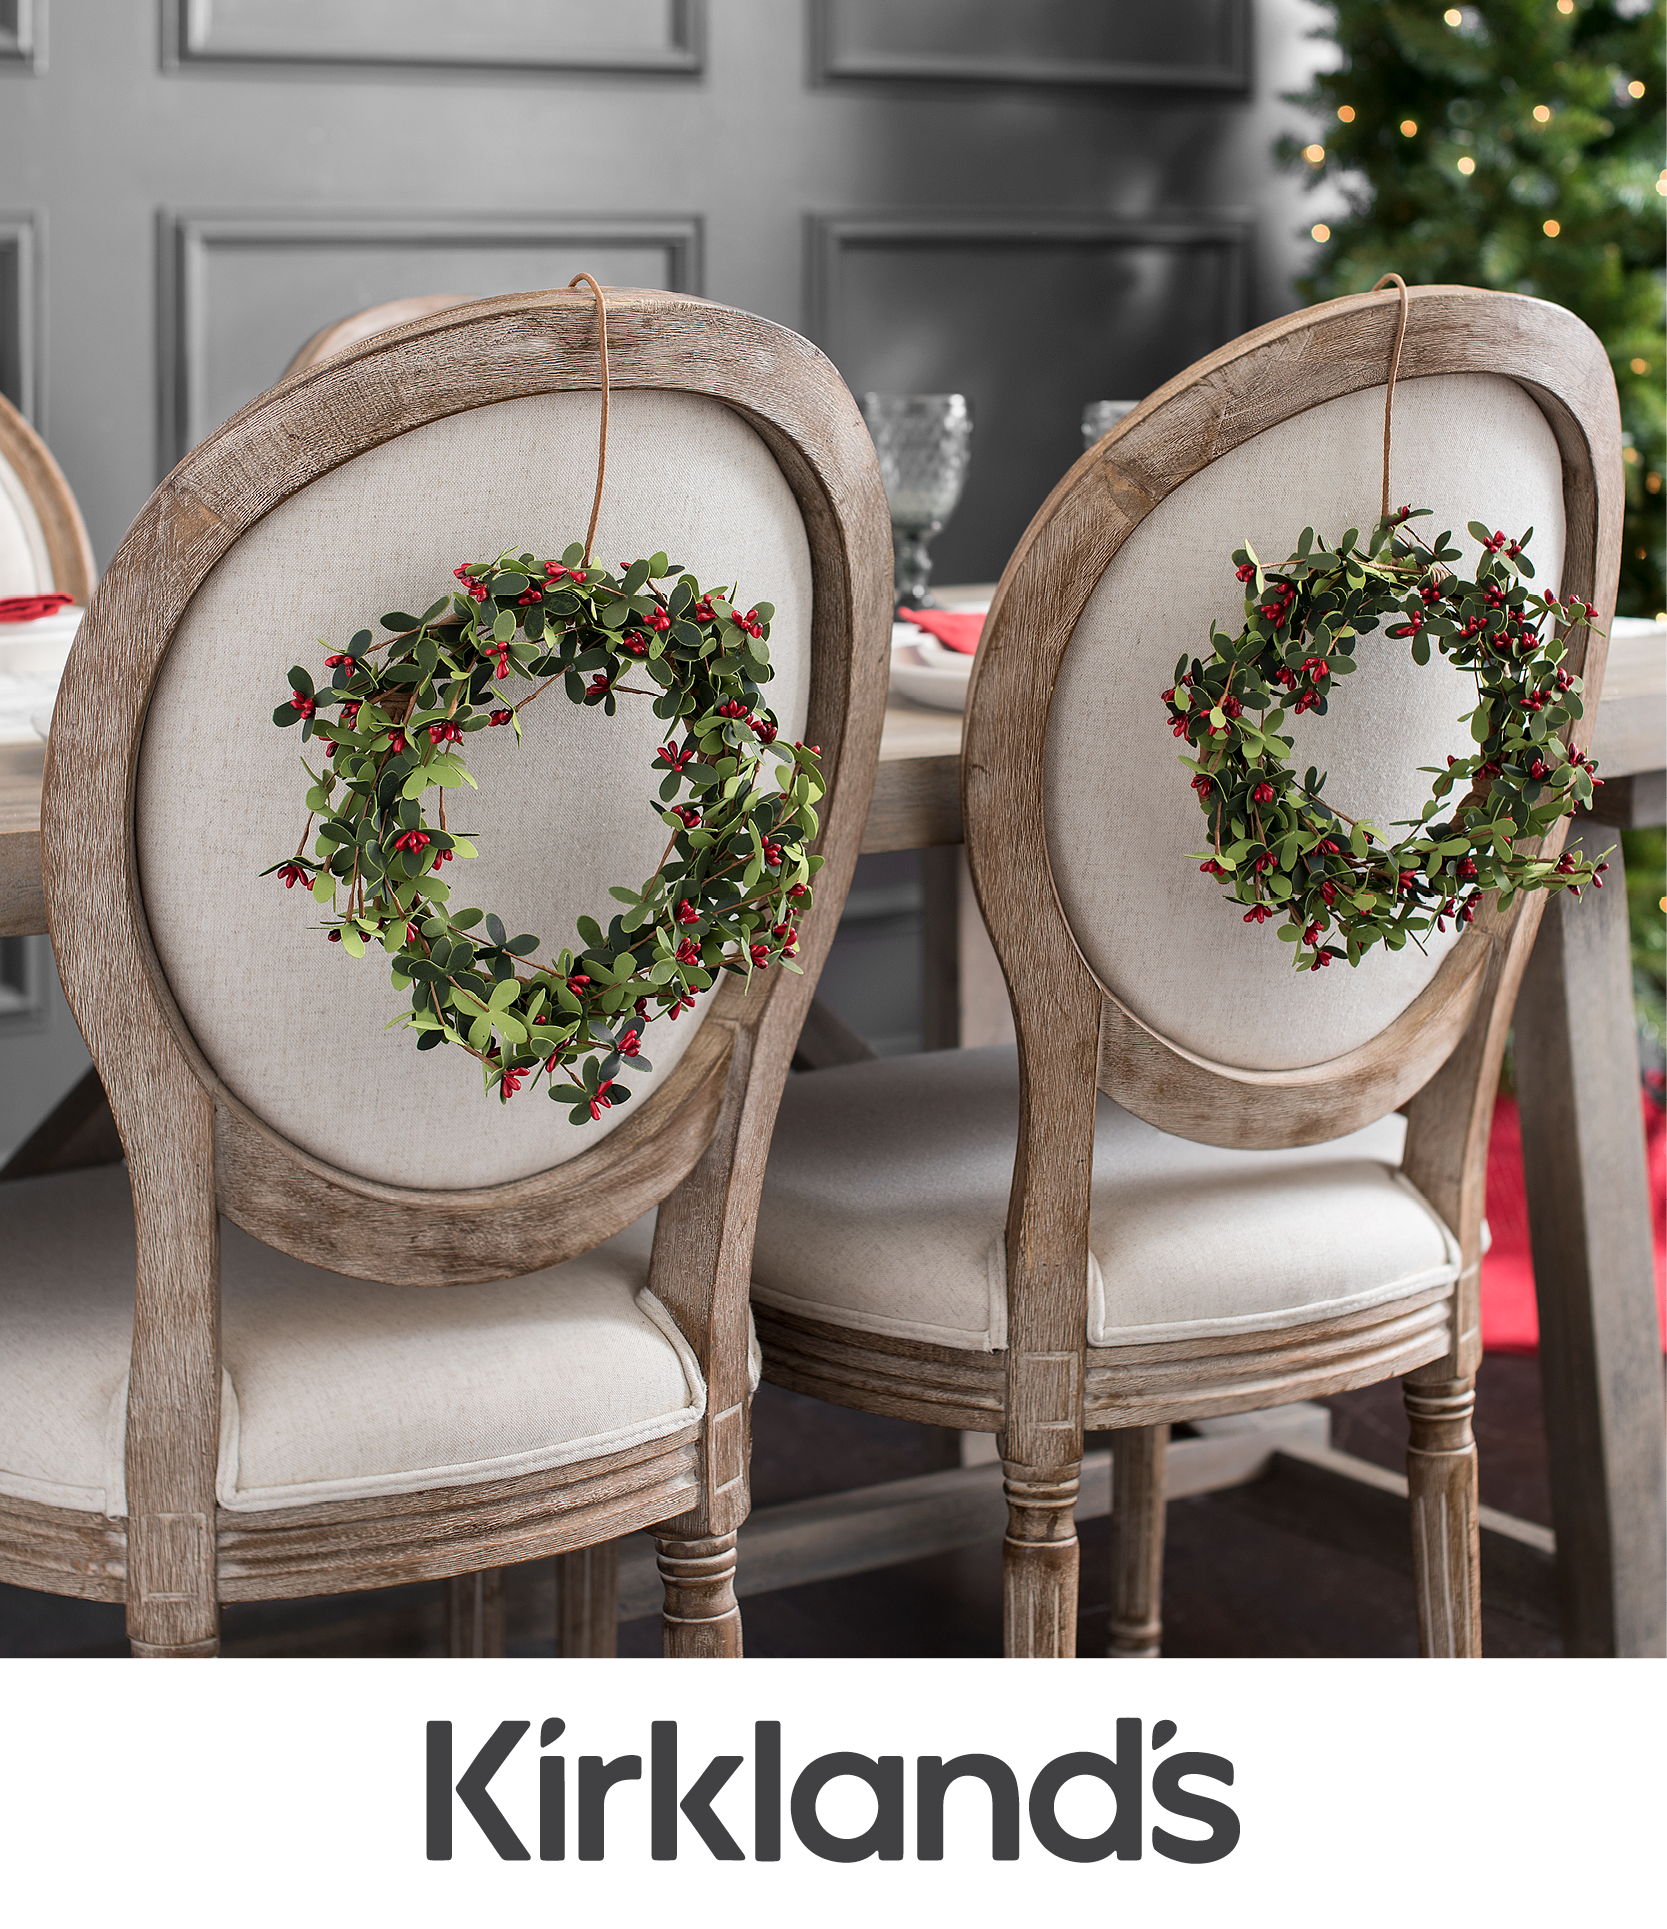 Add A Small Wreath To The Backs Of Your Dining Chairs For A Quick Christmas Touch Mini Wreaths Small Wreaths Christmas Decorations